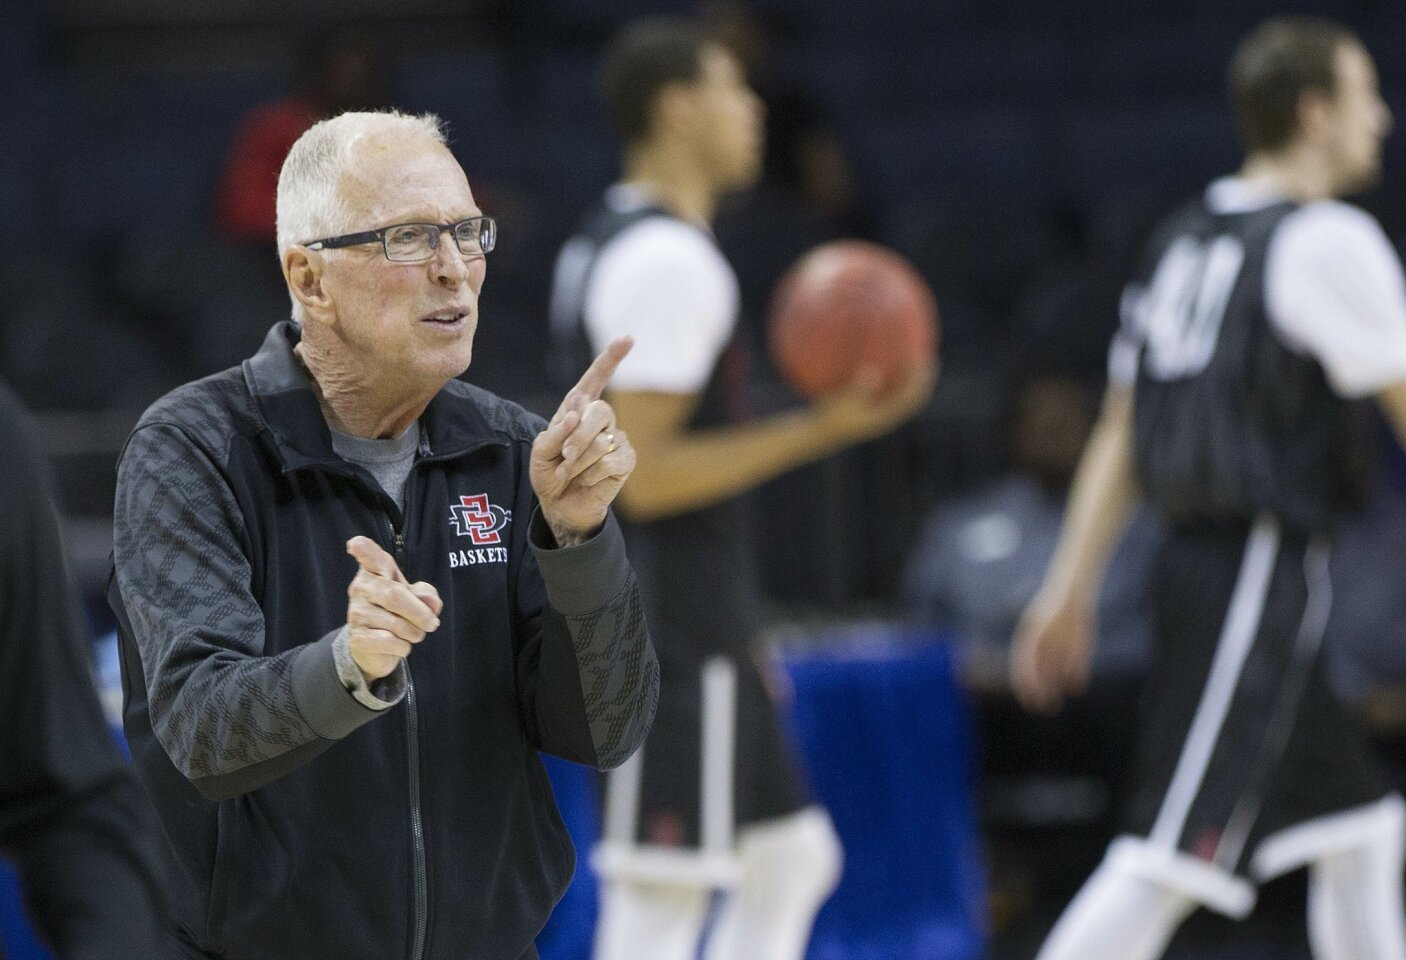 SDSU Mens Basketball Team goes through practice at Time Warner Cable Arena in Charlotte,North Carolina. SDSU Head Coach Steve Fisher directing drills during practice Thursday.